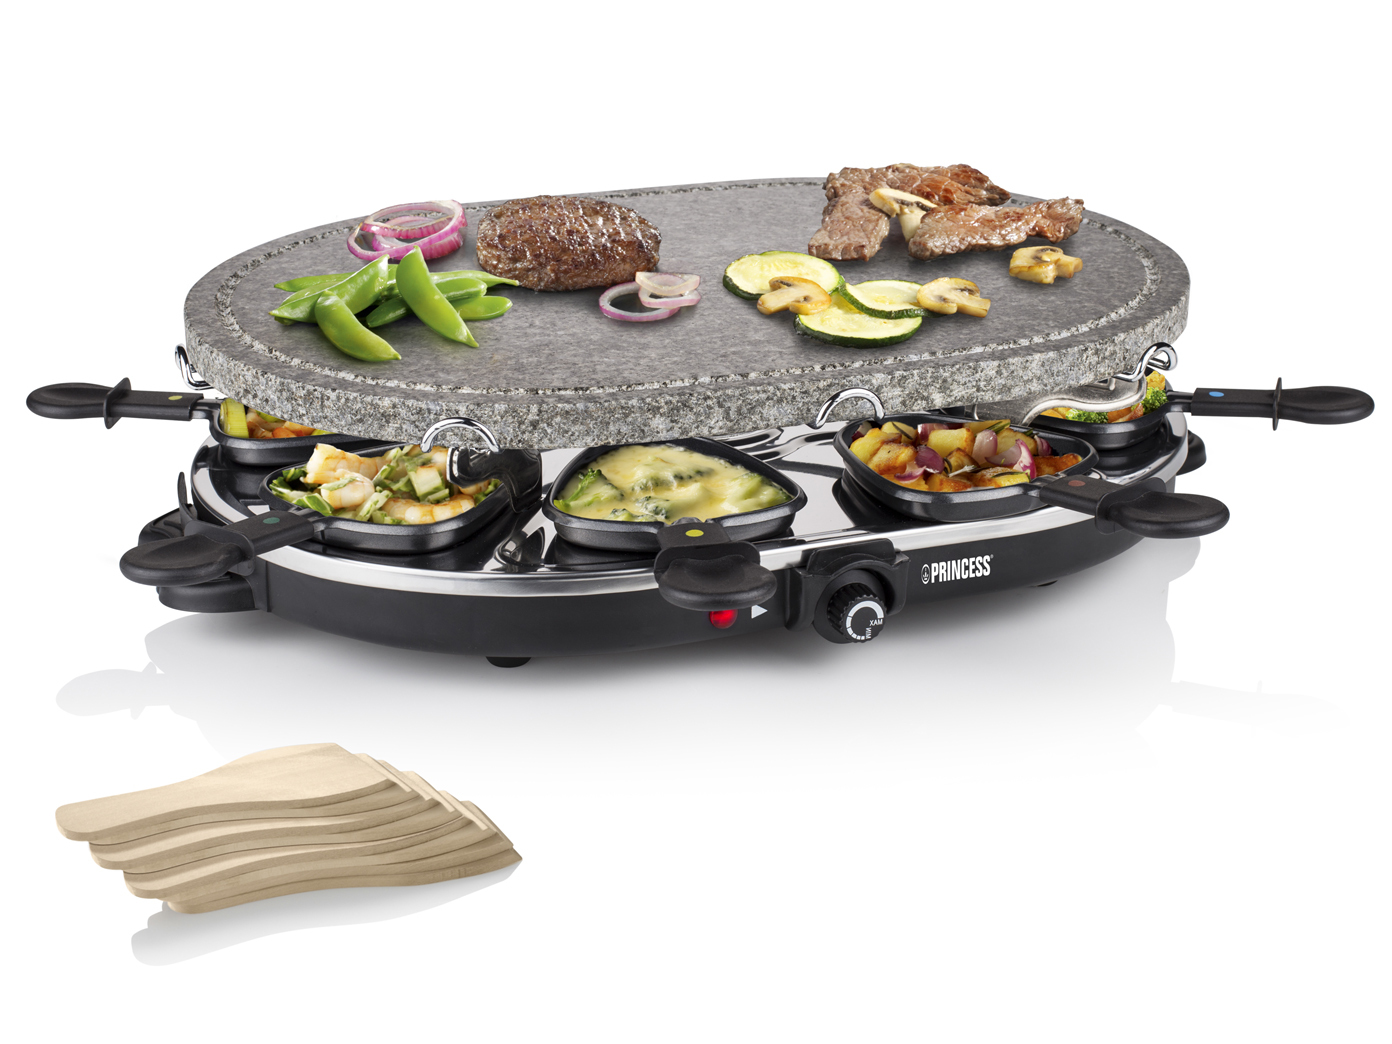 raclette mit steinplatte antihaftbeschichtung 1200 watt f r 8 personen ebay. Black Bedroom Furniture Sets. Home Design Ideas